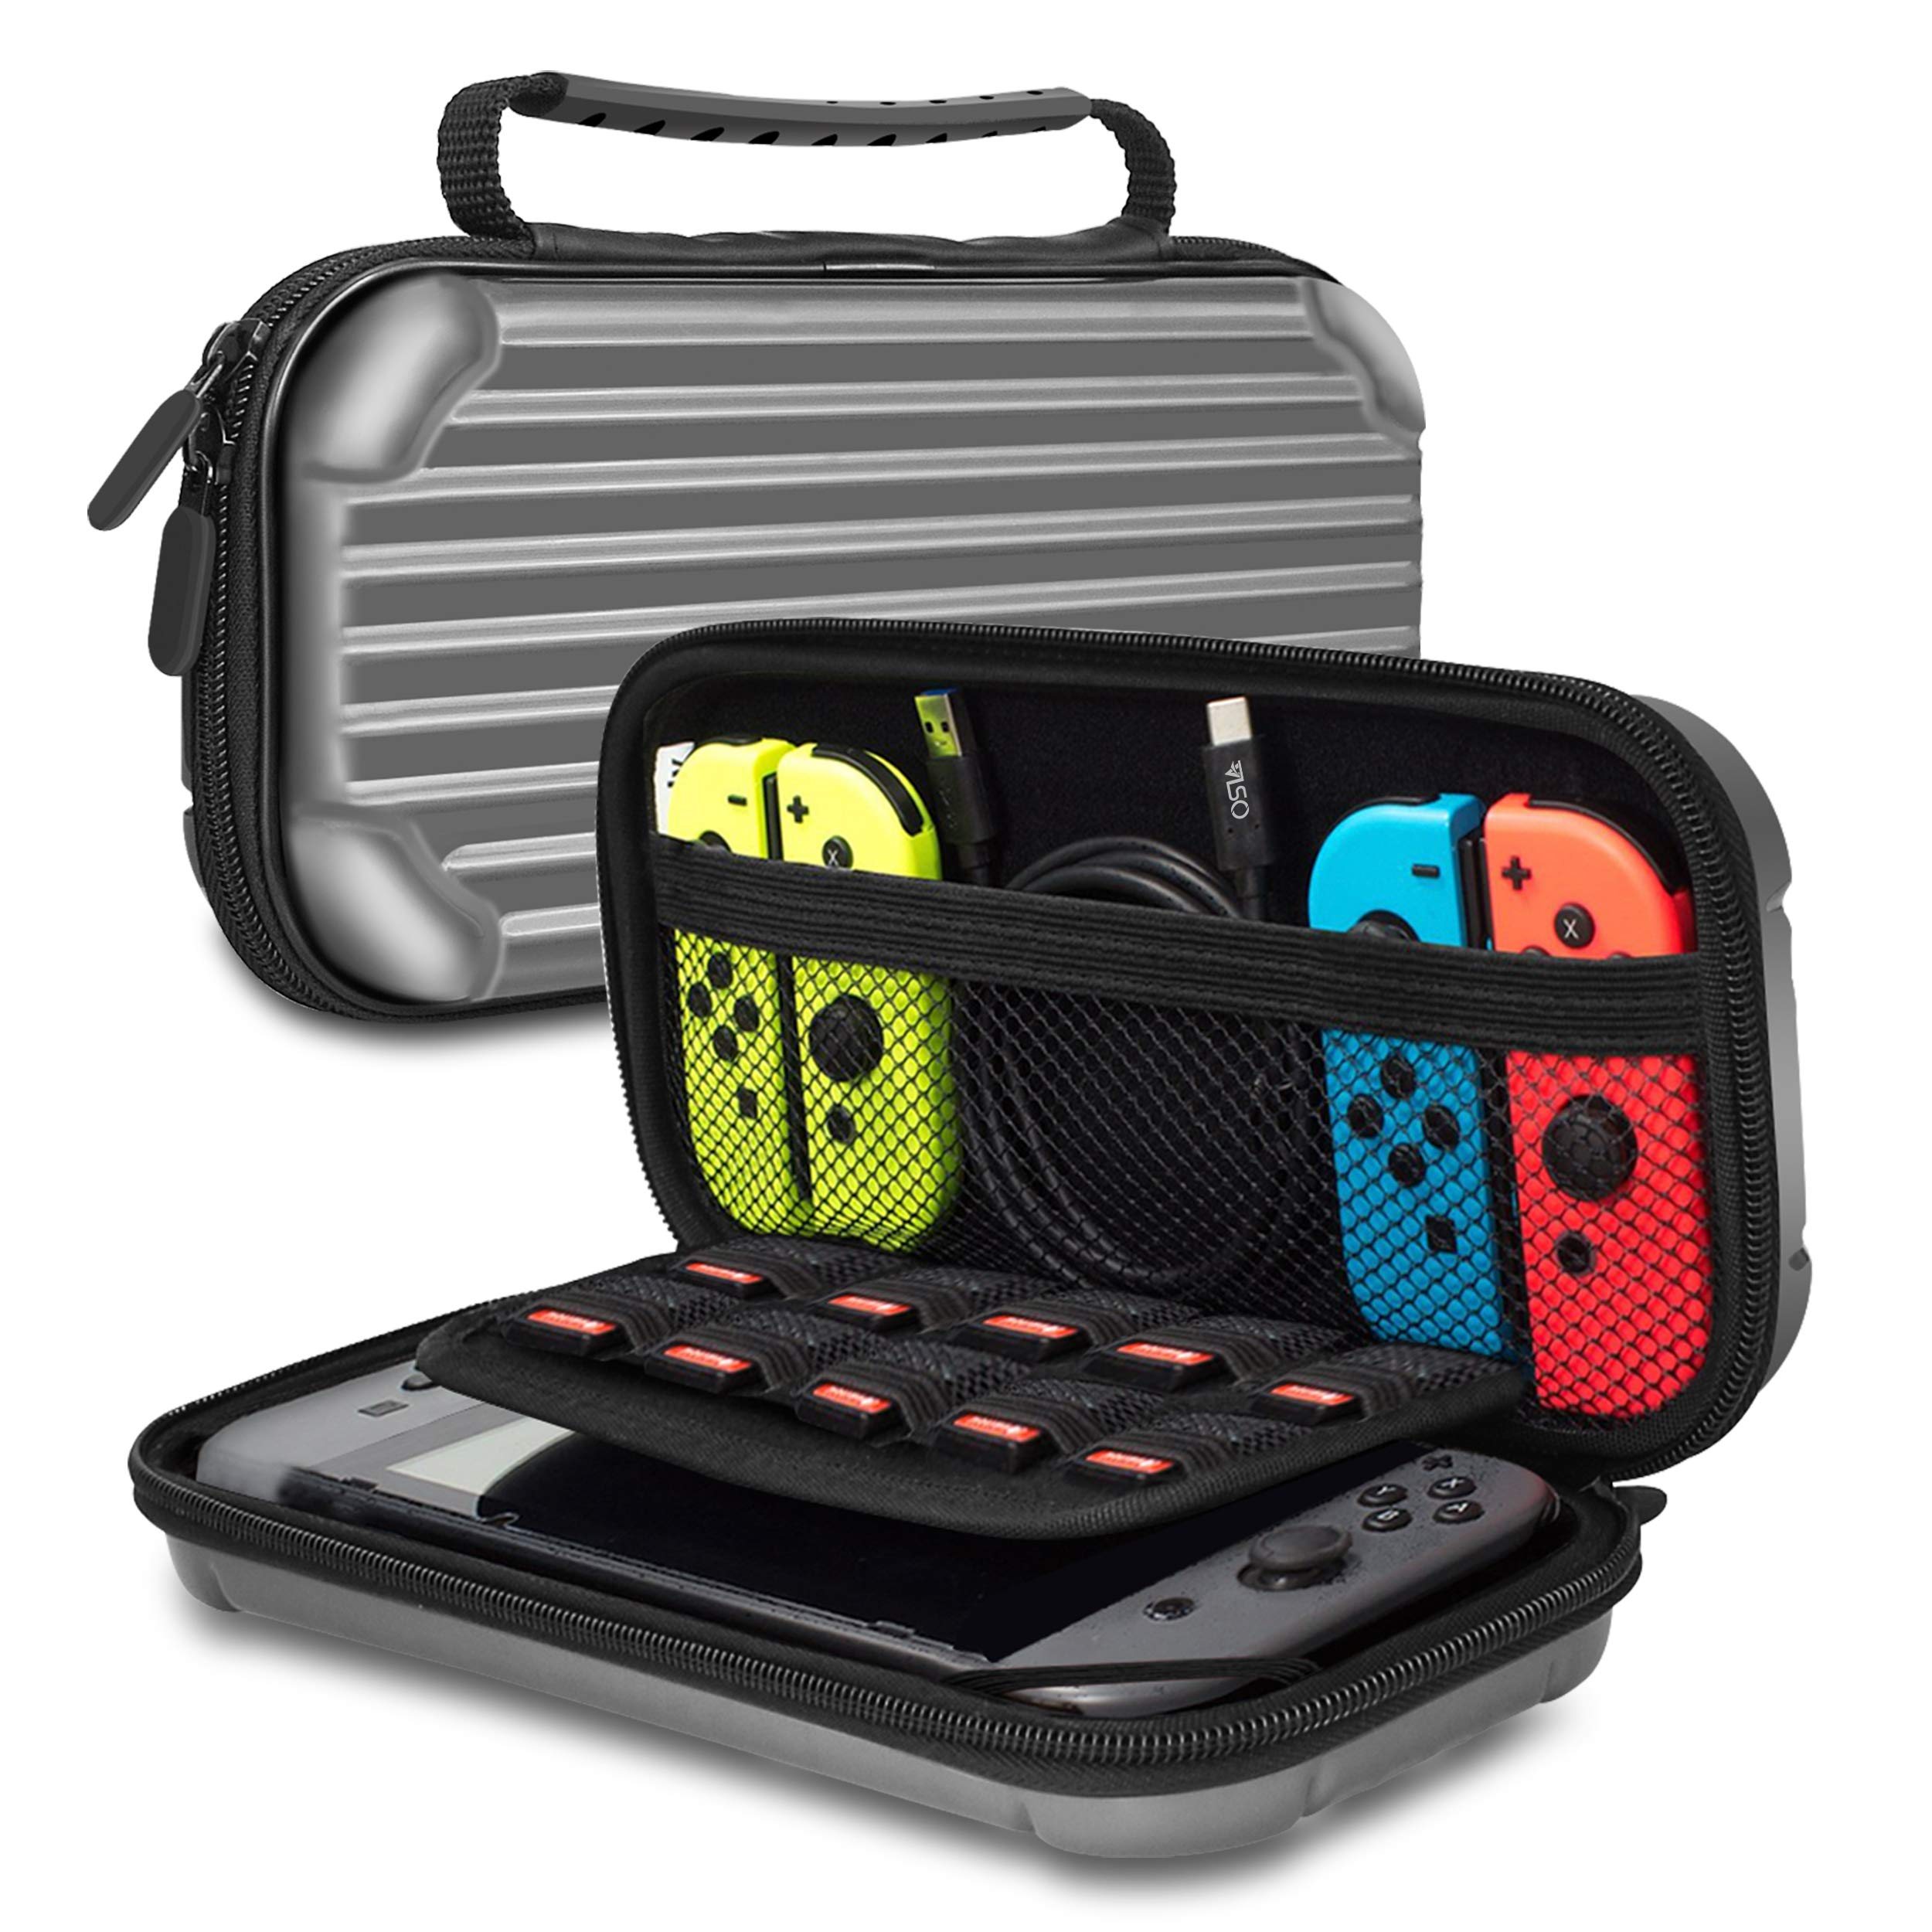 Osla Nintendo Switch Carrying Case Carrier Nintendo Switch Hard Carry Case Travel Case Hard Shell Pouch Nintendo Switch Storage for Games Mario Party Captain Toad Zelda Smash Bros Pokemon Switch Grey